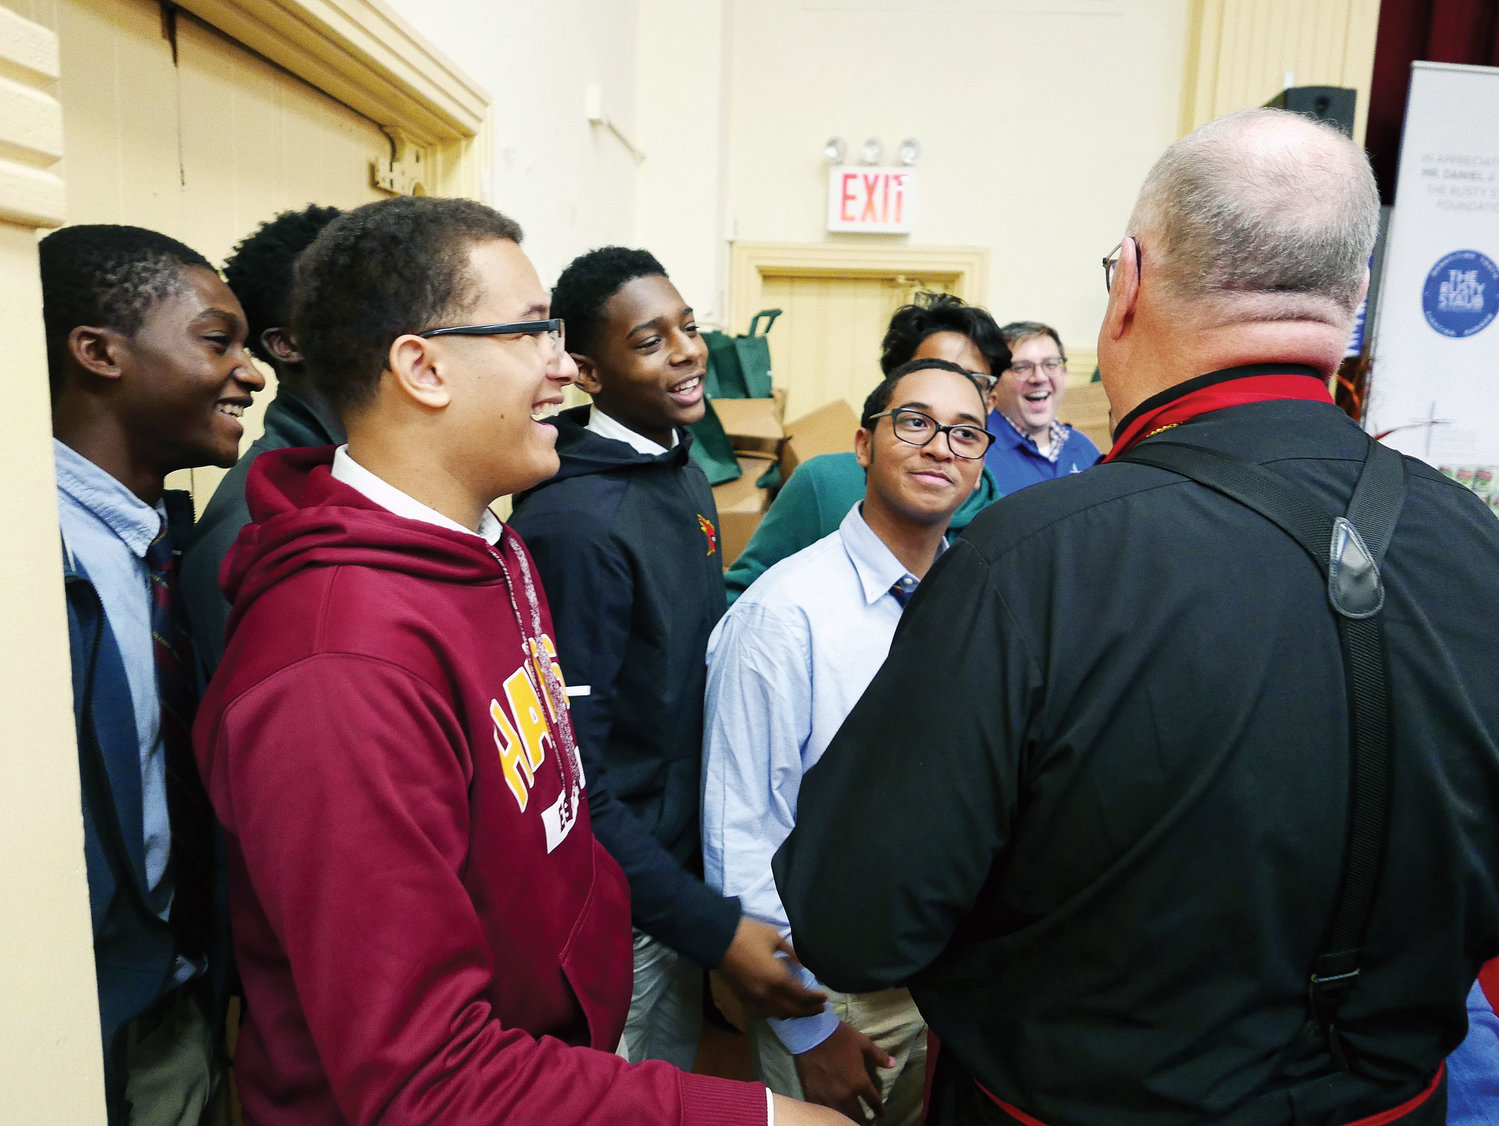 Cardinal Dolan was there to greet people and distribute turkeys.